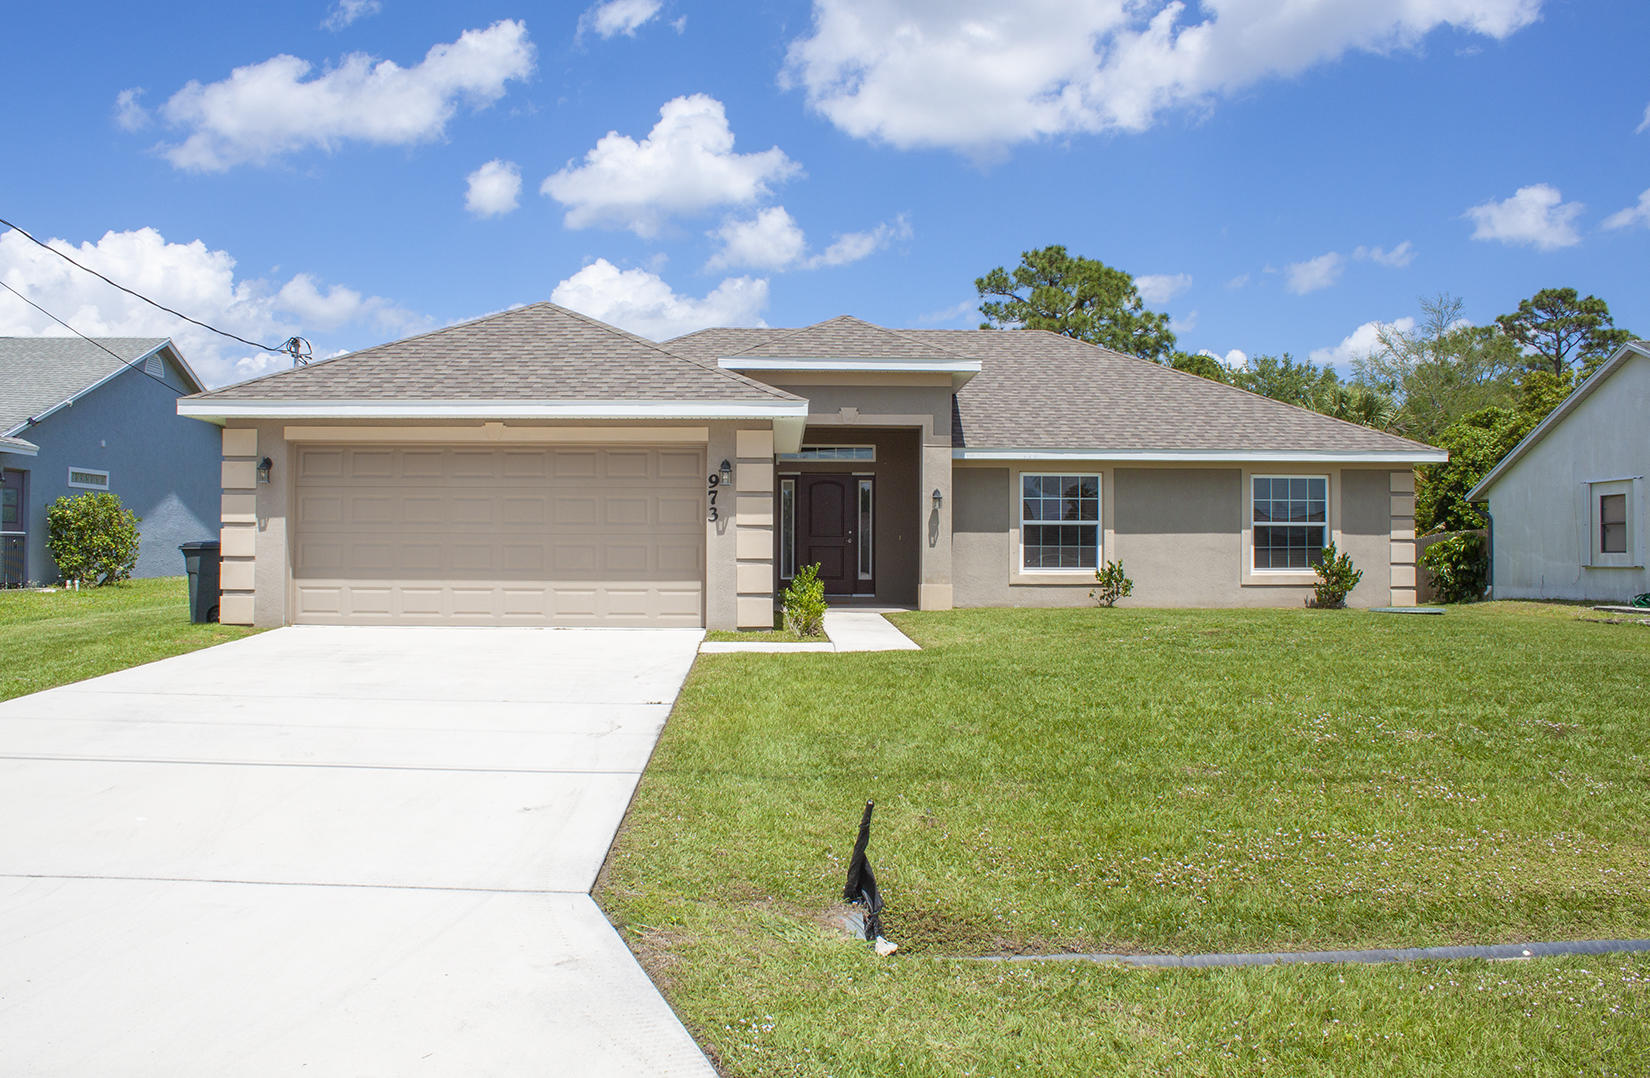 973 SE Bywood Avenue 34983 - One of Port Saint Lucie Homes for Sale